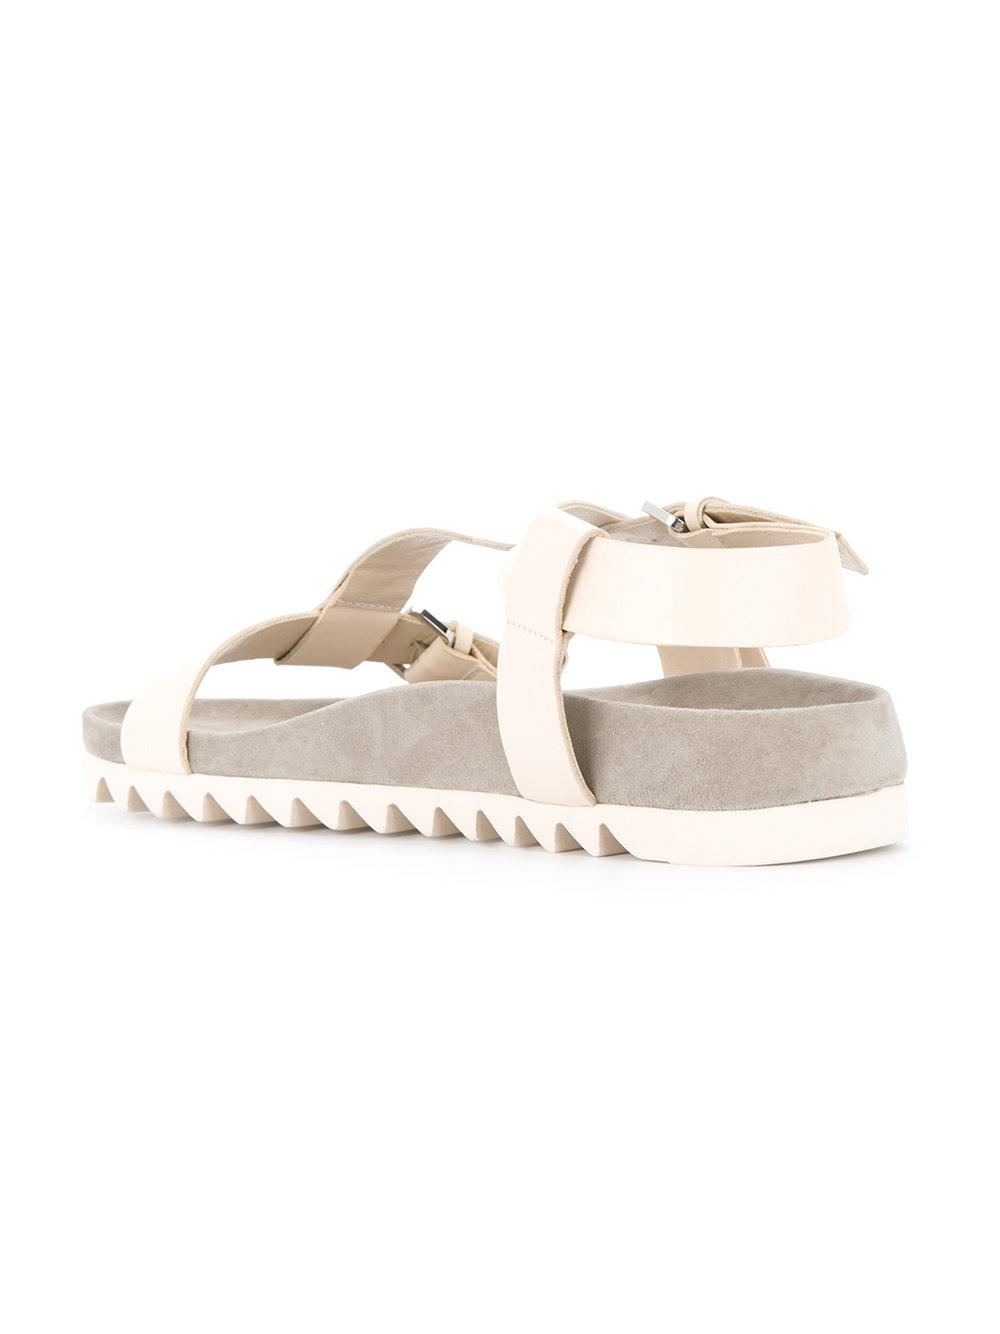 3ea67437ac342 Dion Lee Buckle Flat Sandals in Gray - Lyst